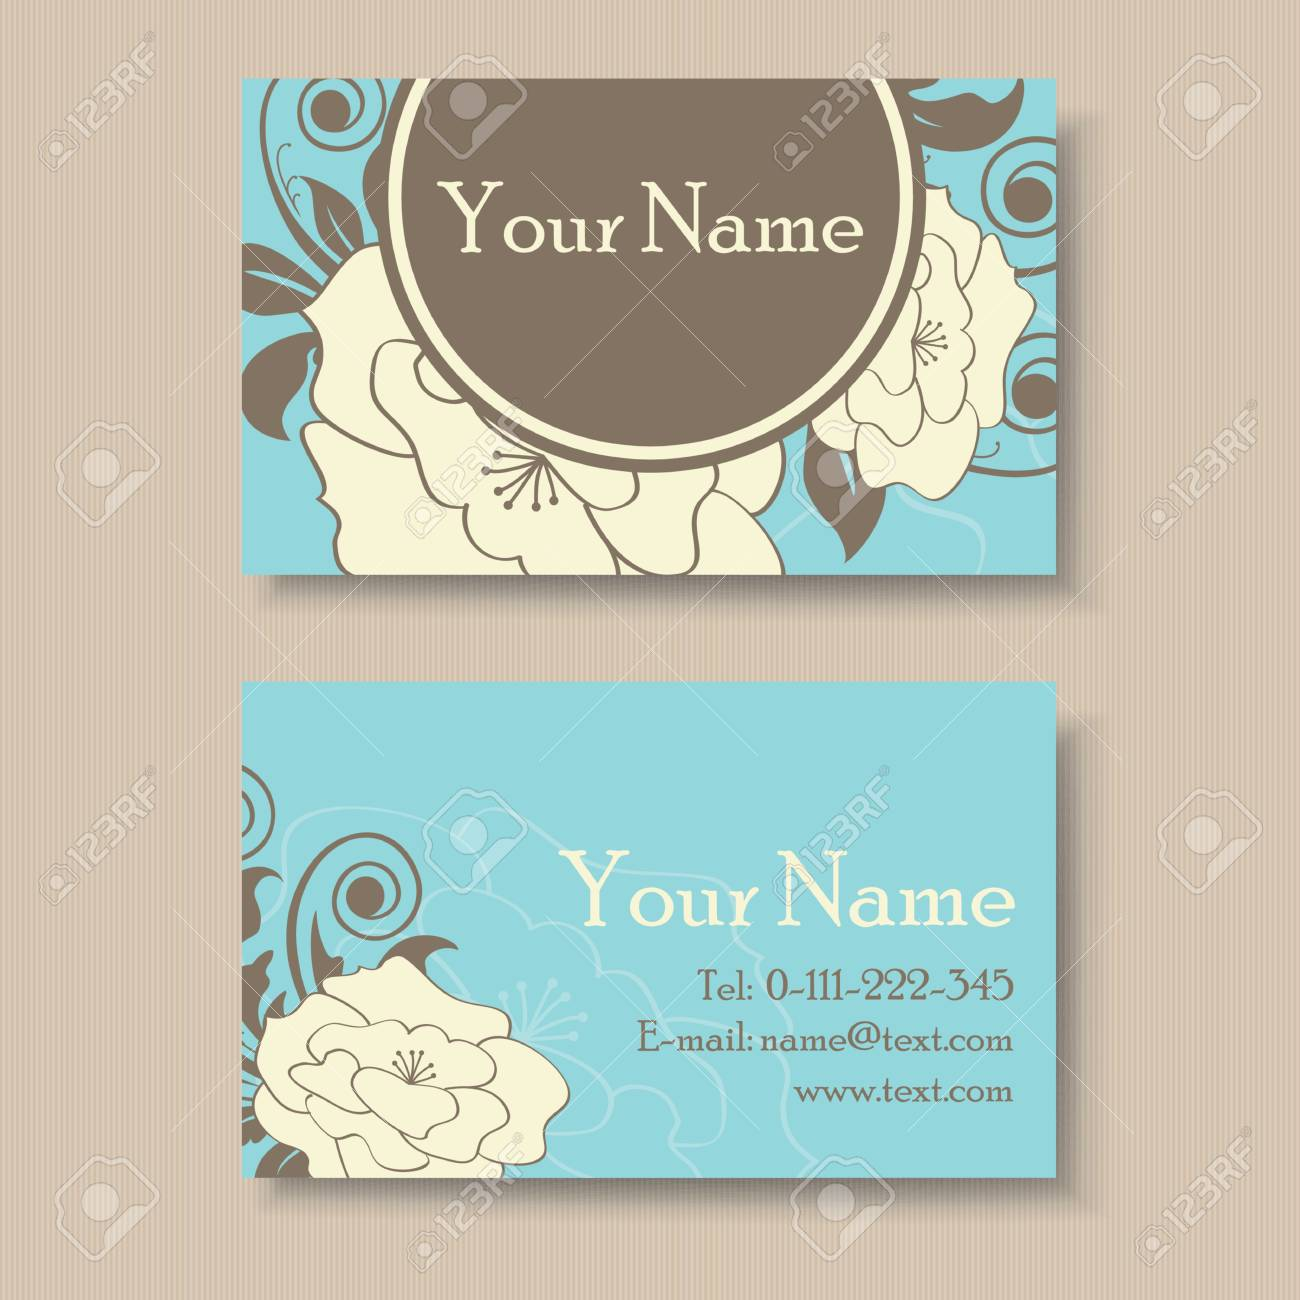 Beautiful Blue Floral Business Card Template Royalty Free Cliparts ...